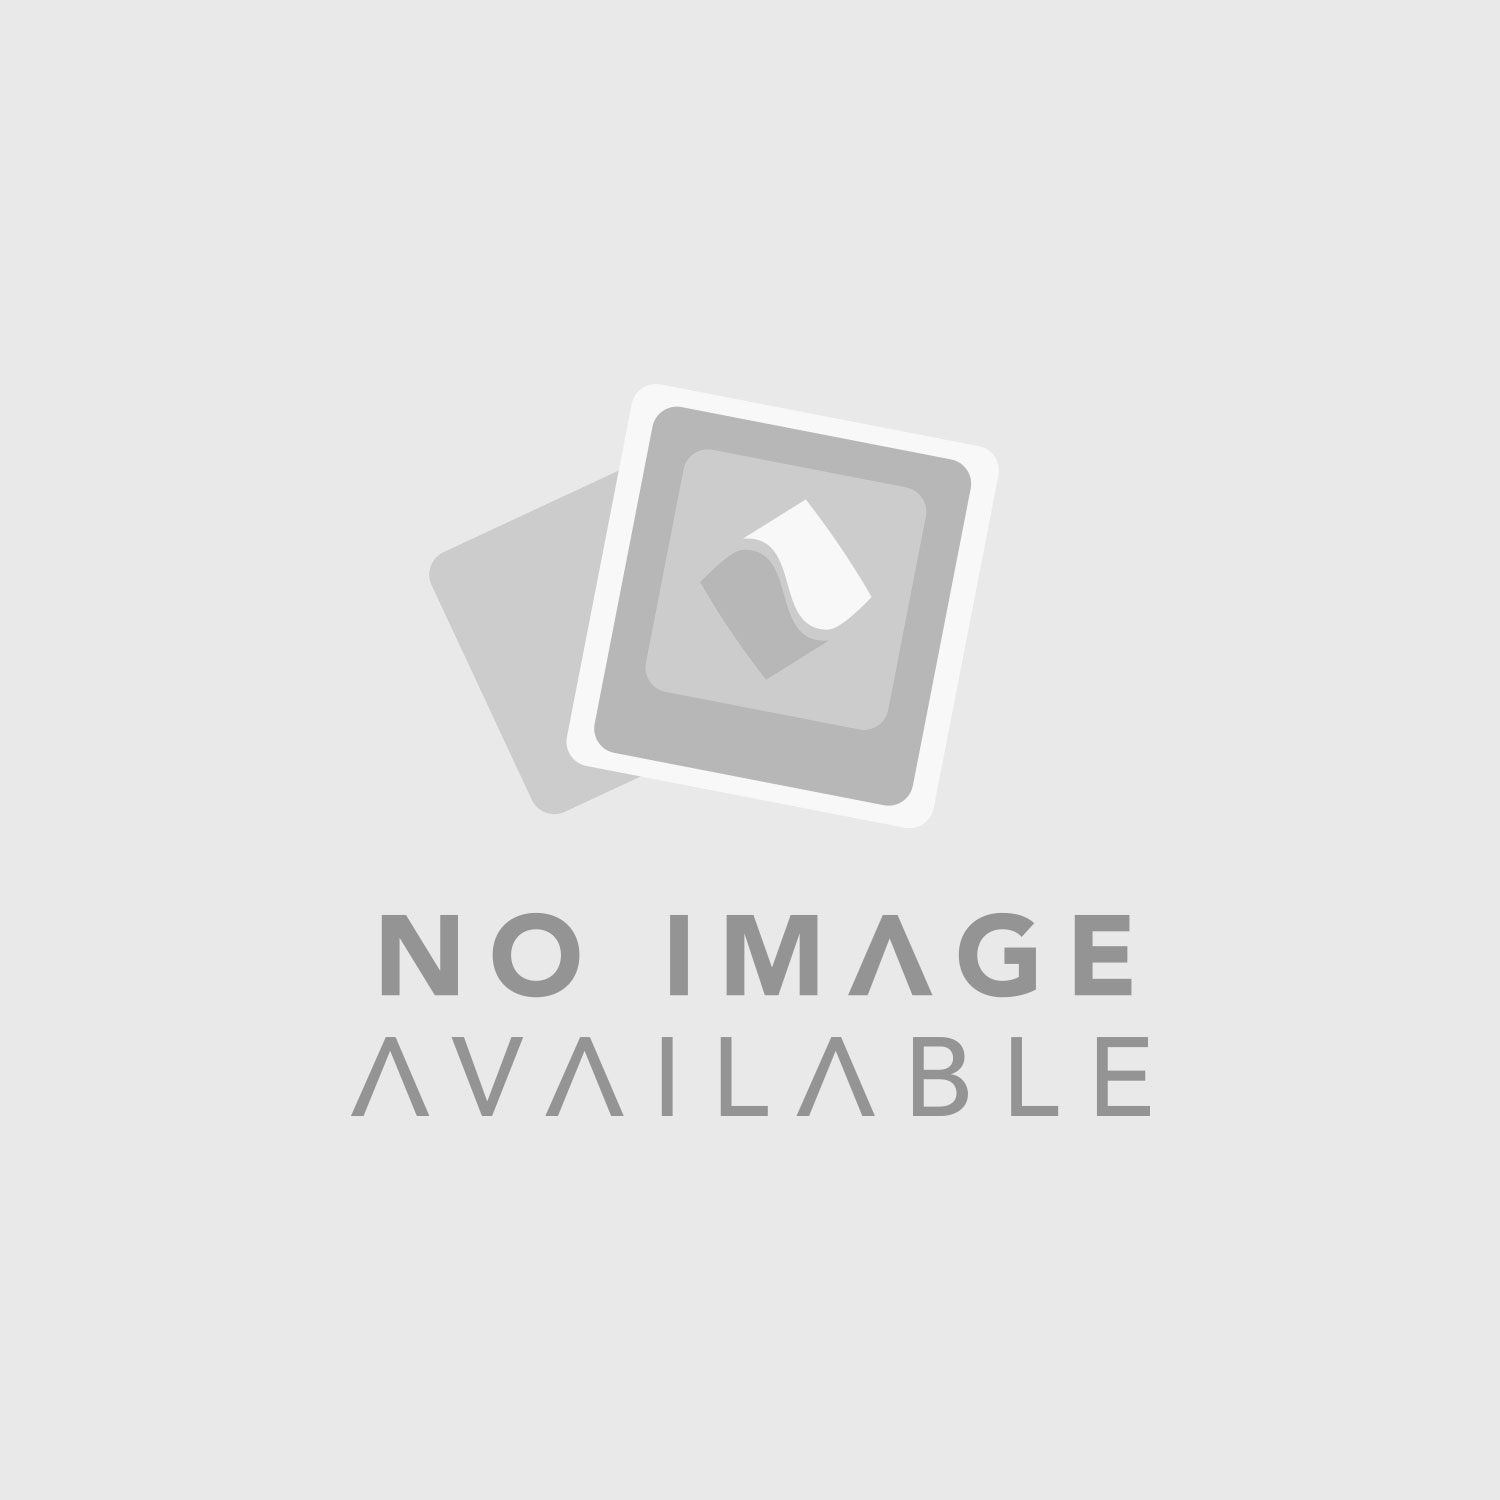 Eartec SSTSC4000LP Two-Way Radio System with SST Headsets